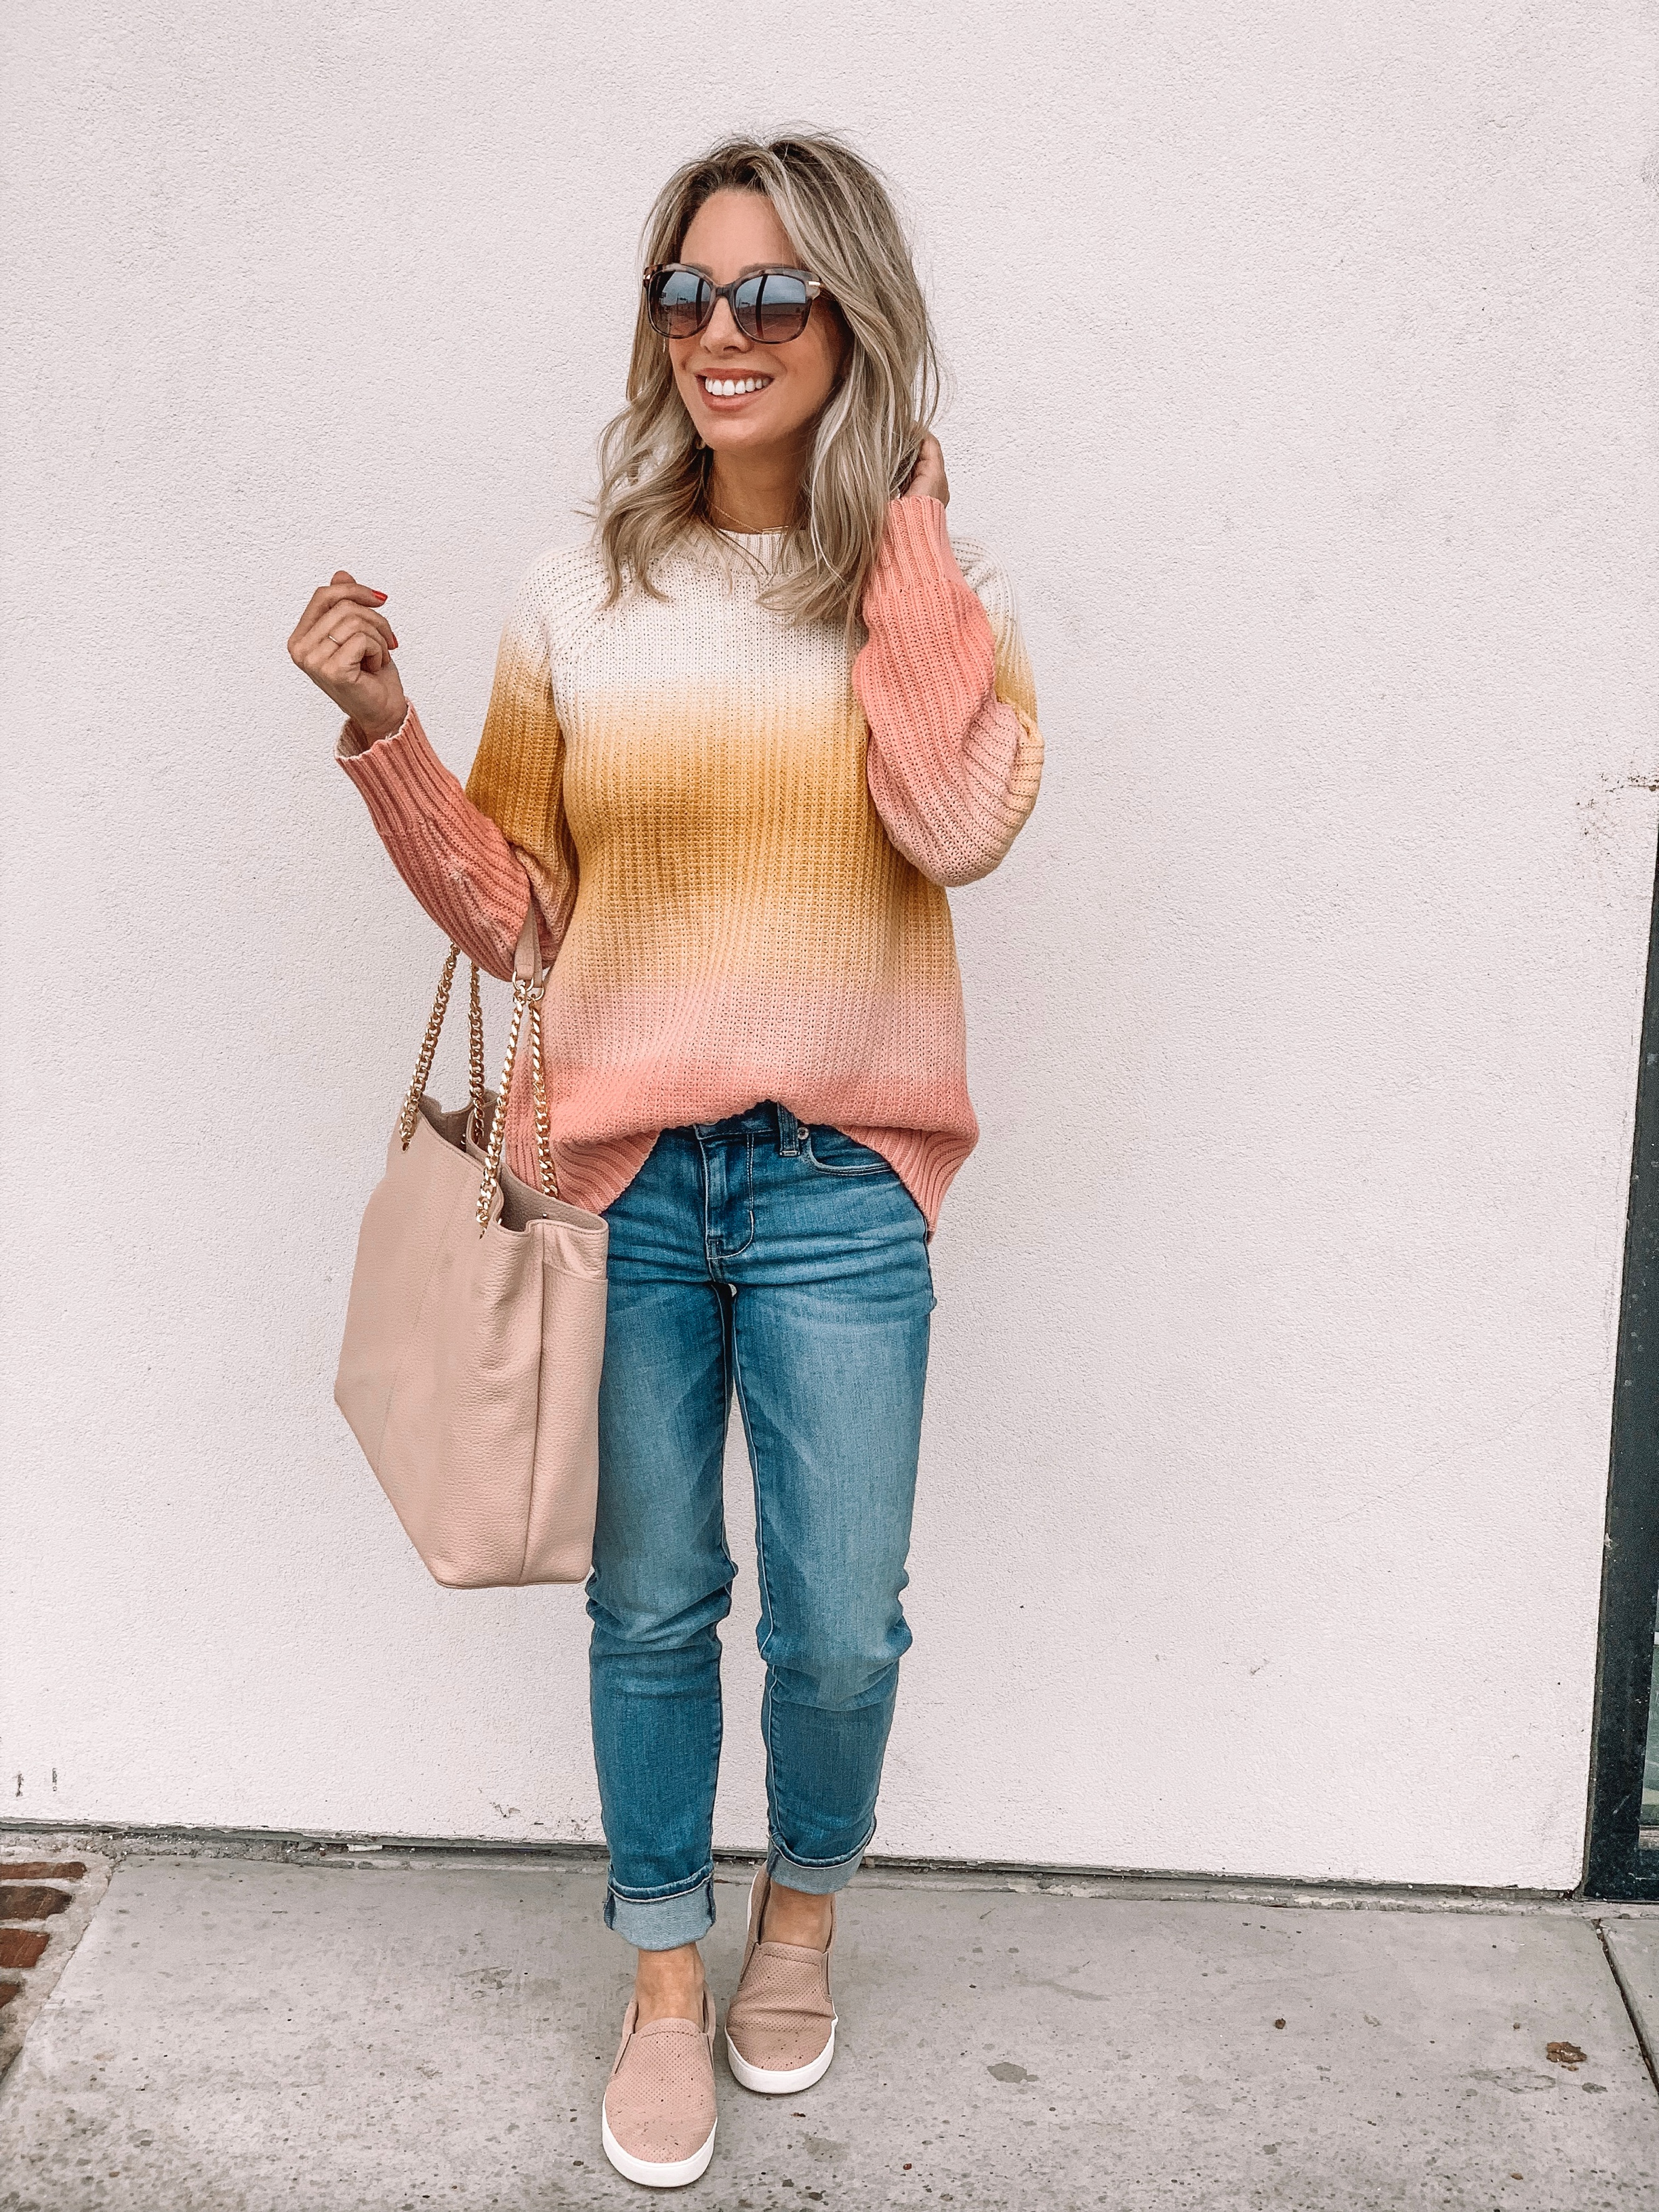 Jeans and striped sweater with pink slip on sneakers